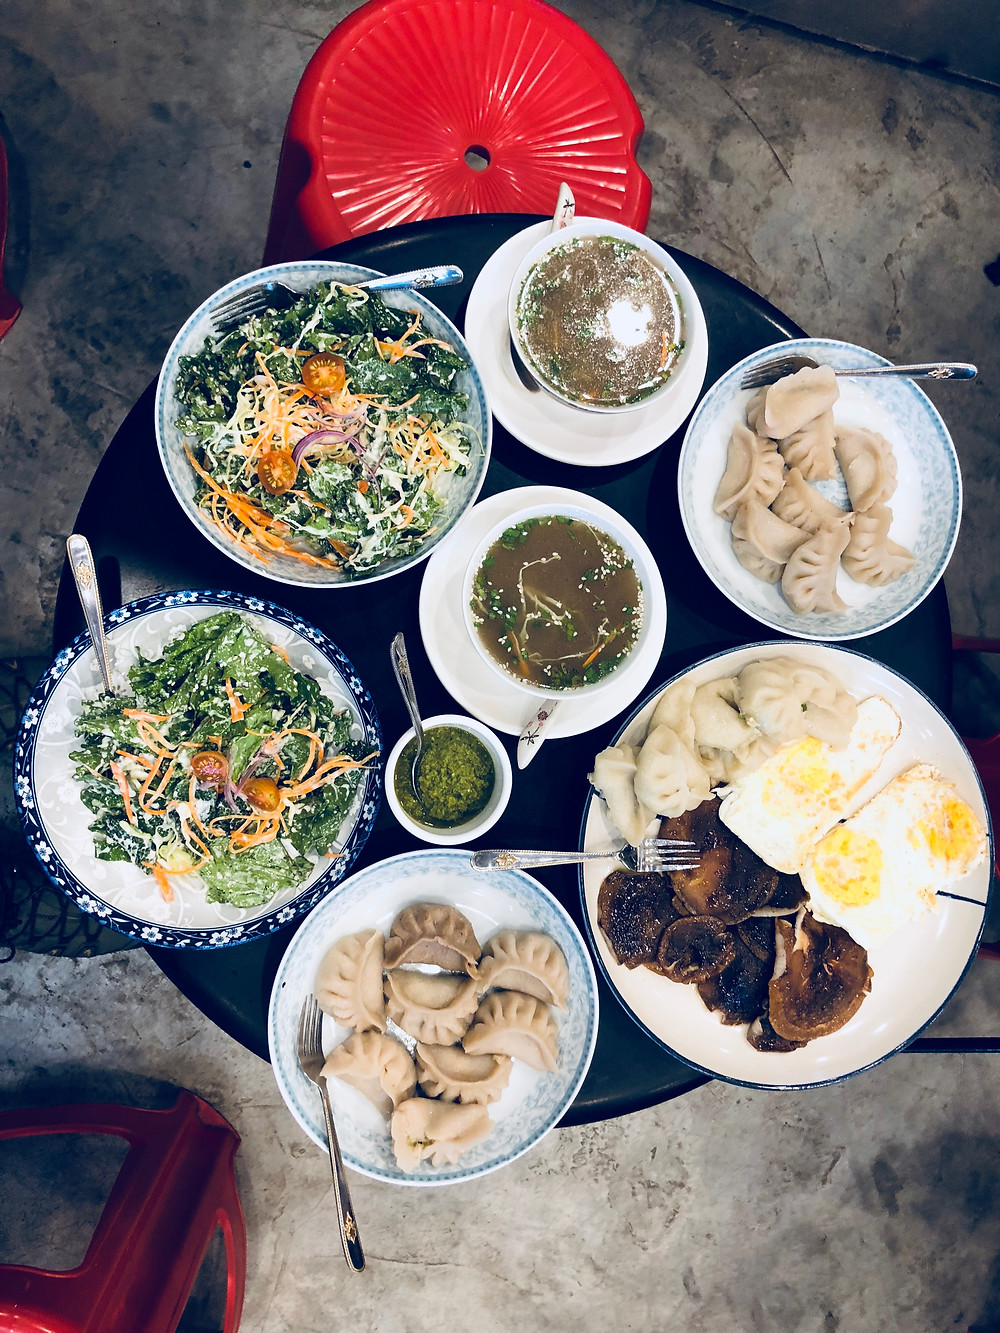 A selection of traditional and modern Bhutanese eats, including momos or steamed dumplings, bone broth, fried eggs and wild shiitake.